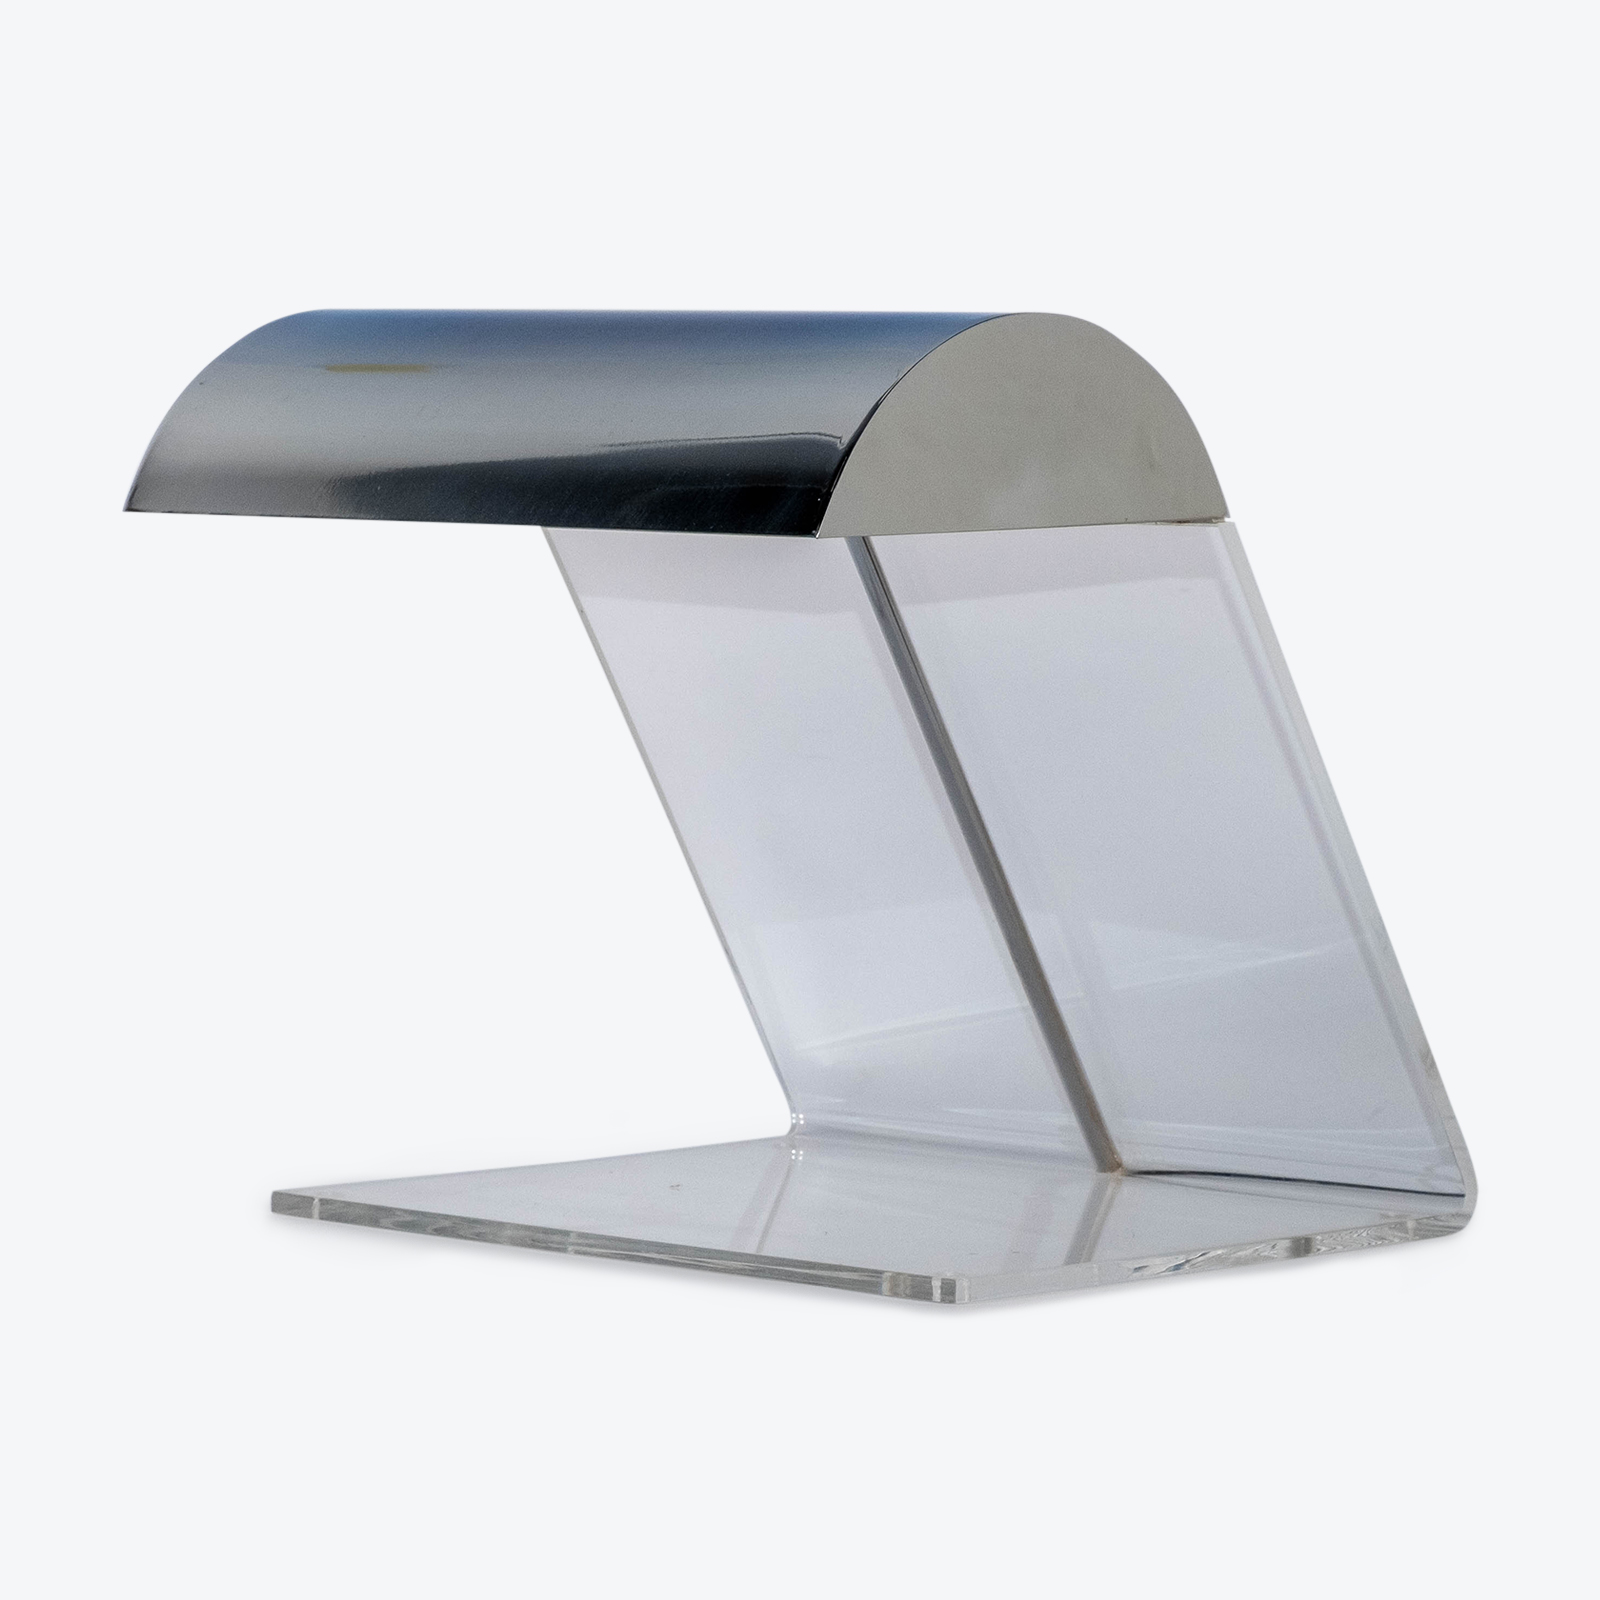 Perspex And Chrome Desk Lamp 1980s, Netherlands Hero Copy